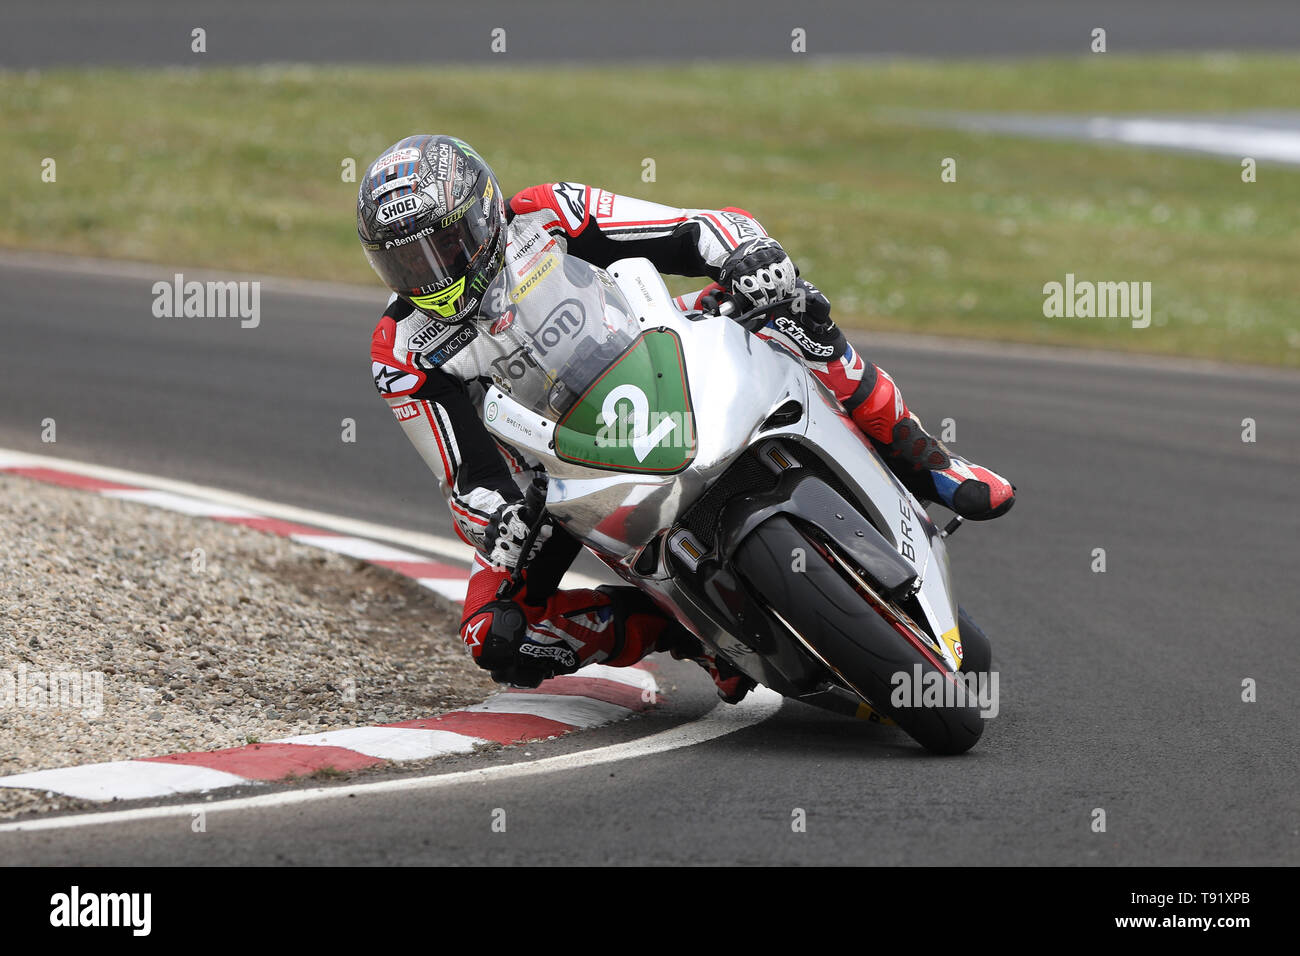 Portrush, Northern Ireland. 16th May, 2019. International North West 200 Motorcycle road racing, Thursday practice and evening racing; John McGuinness on the Norton during the SuperTwins qualifying session Credit: Action Plus Sports/Alamy Live News - Stock Image